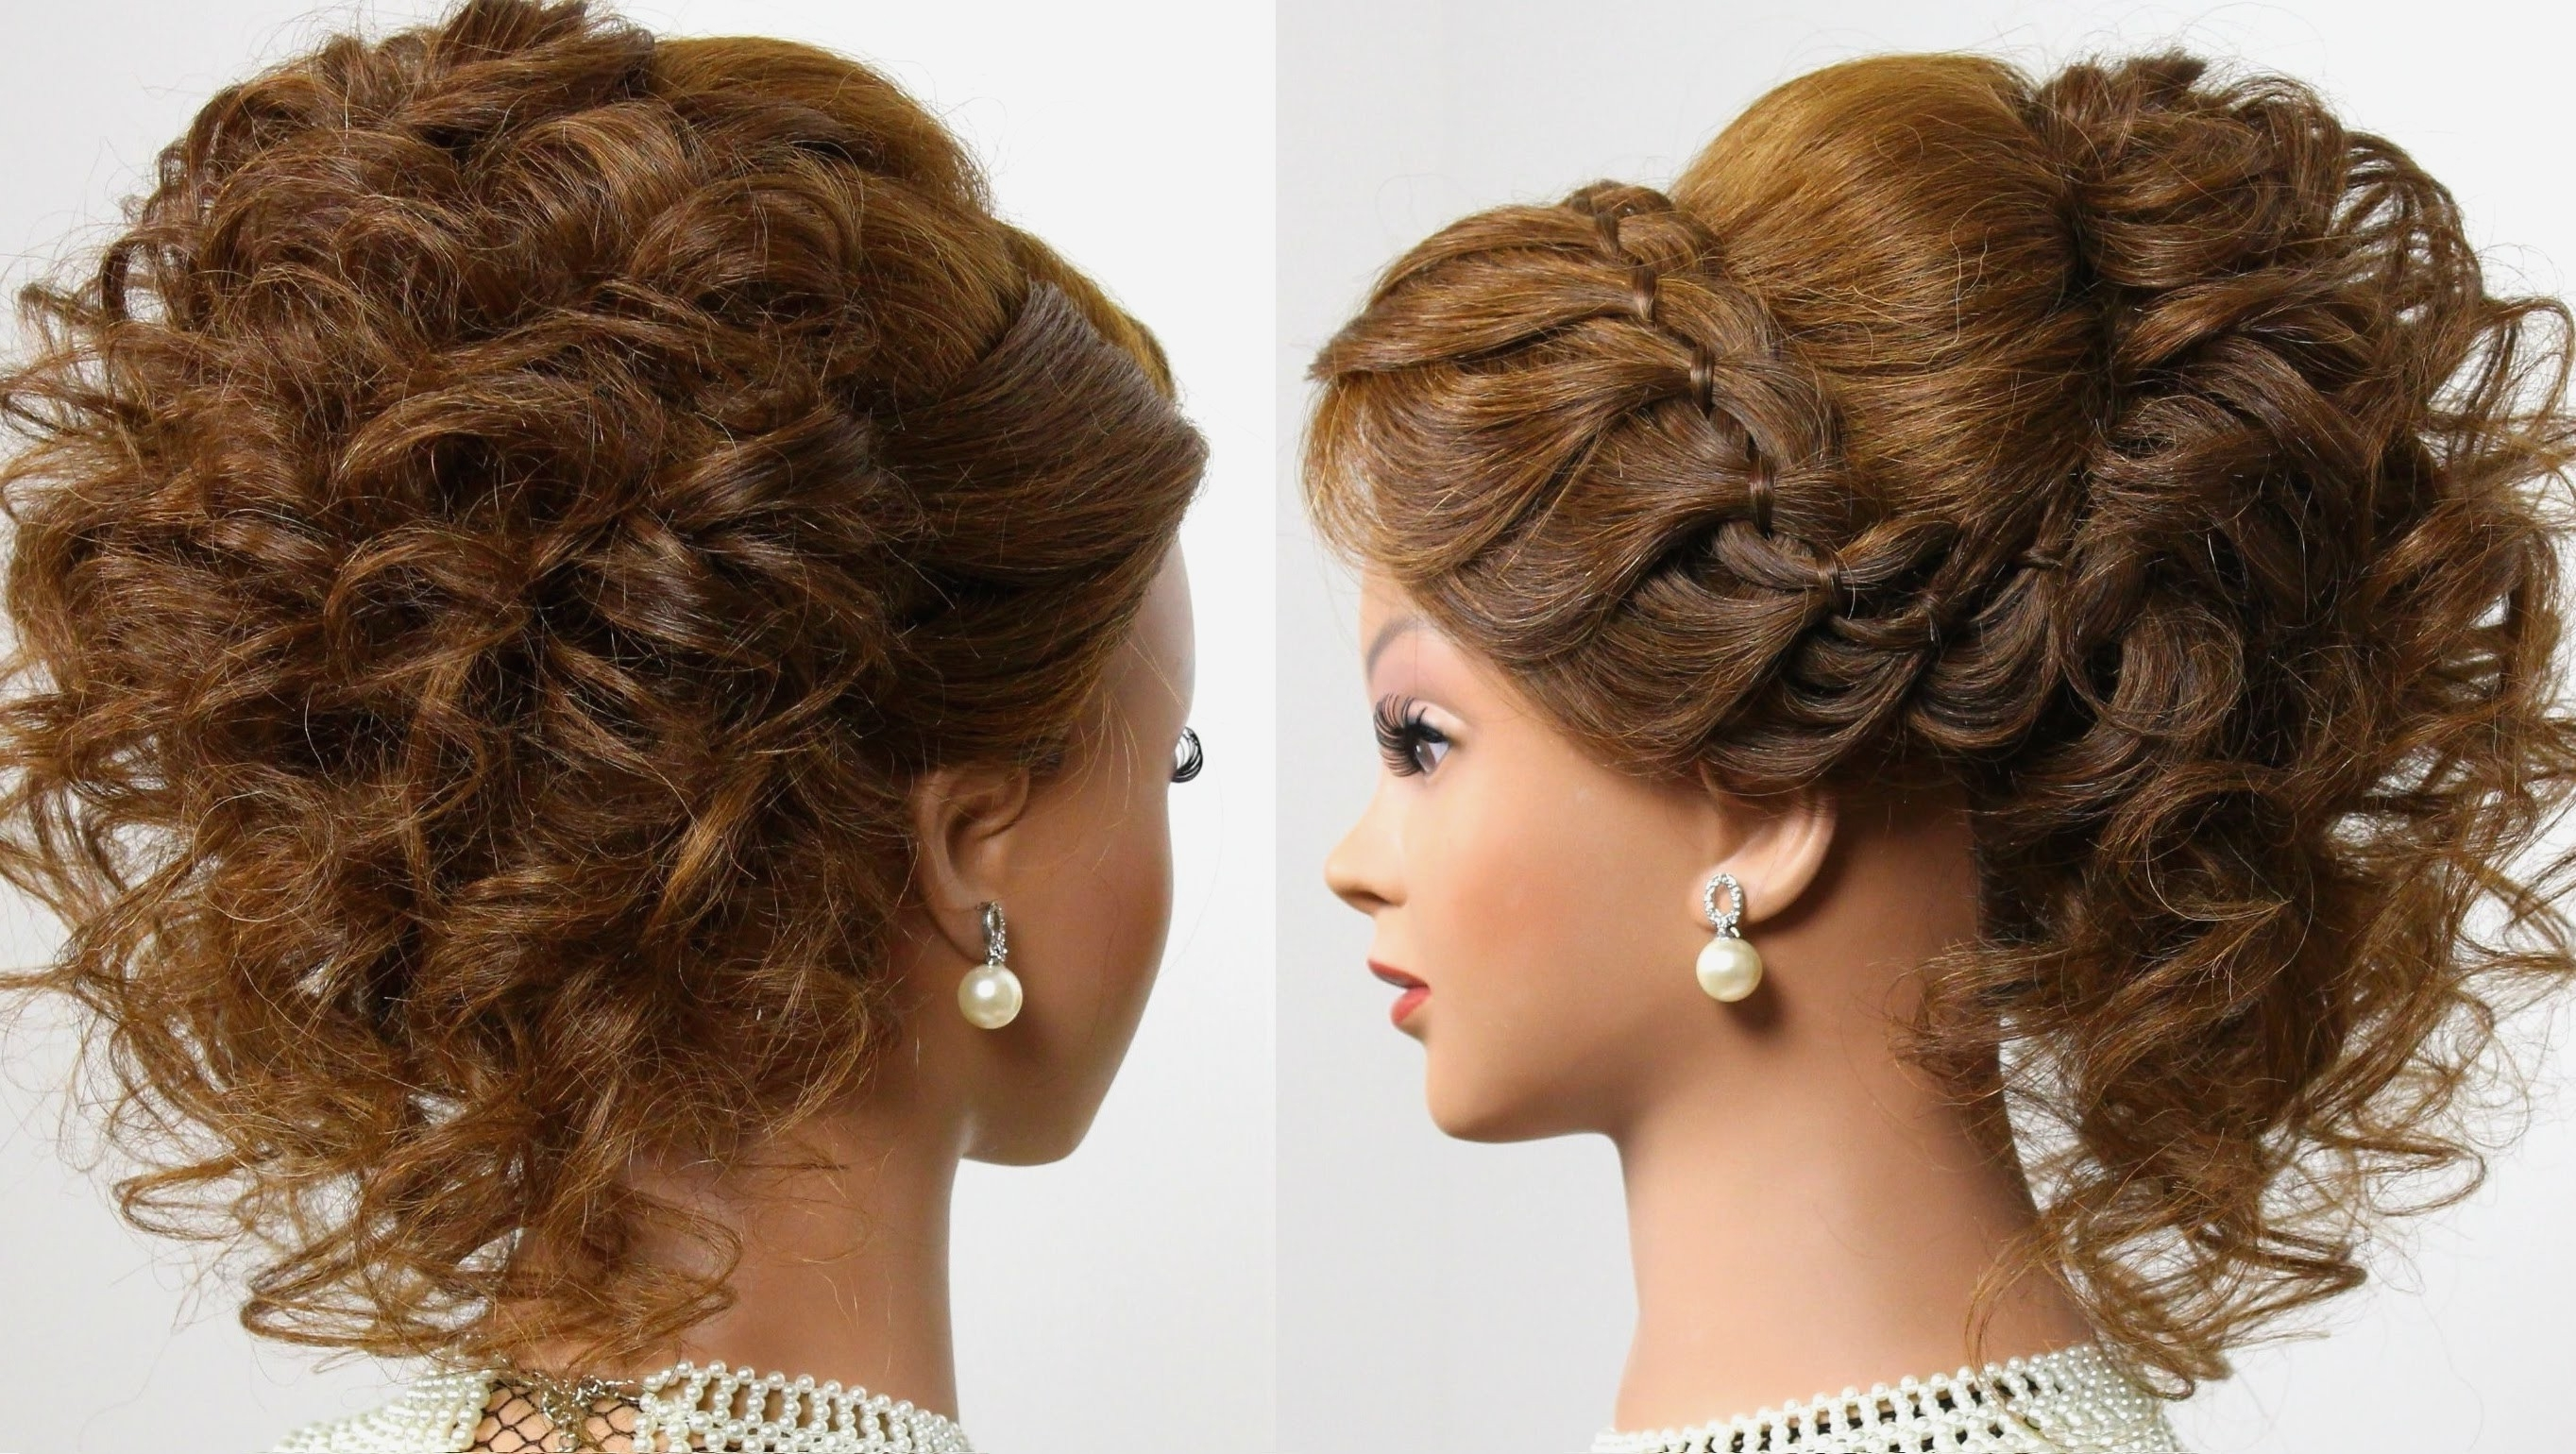 Well Known Bridal Hairstyles For Medium Length Curly Hair Within Wedding Hair Medium Length Updo Updos For Hairstyles Half Upn Bridal (View 15 of 15)